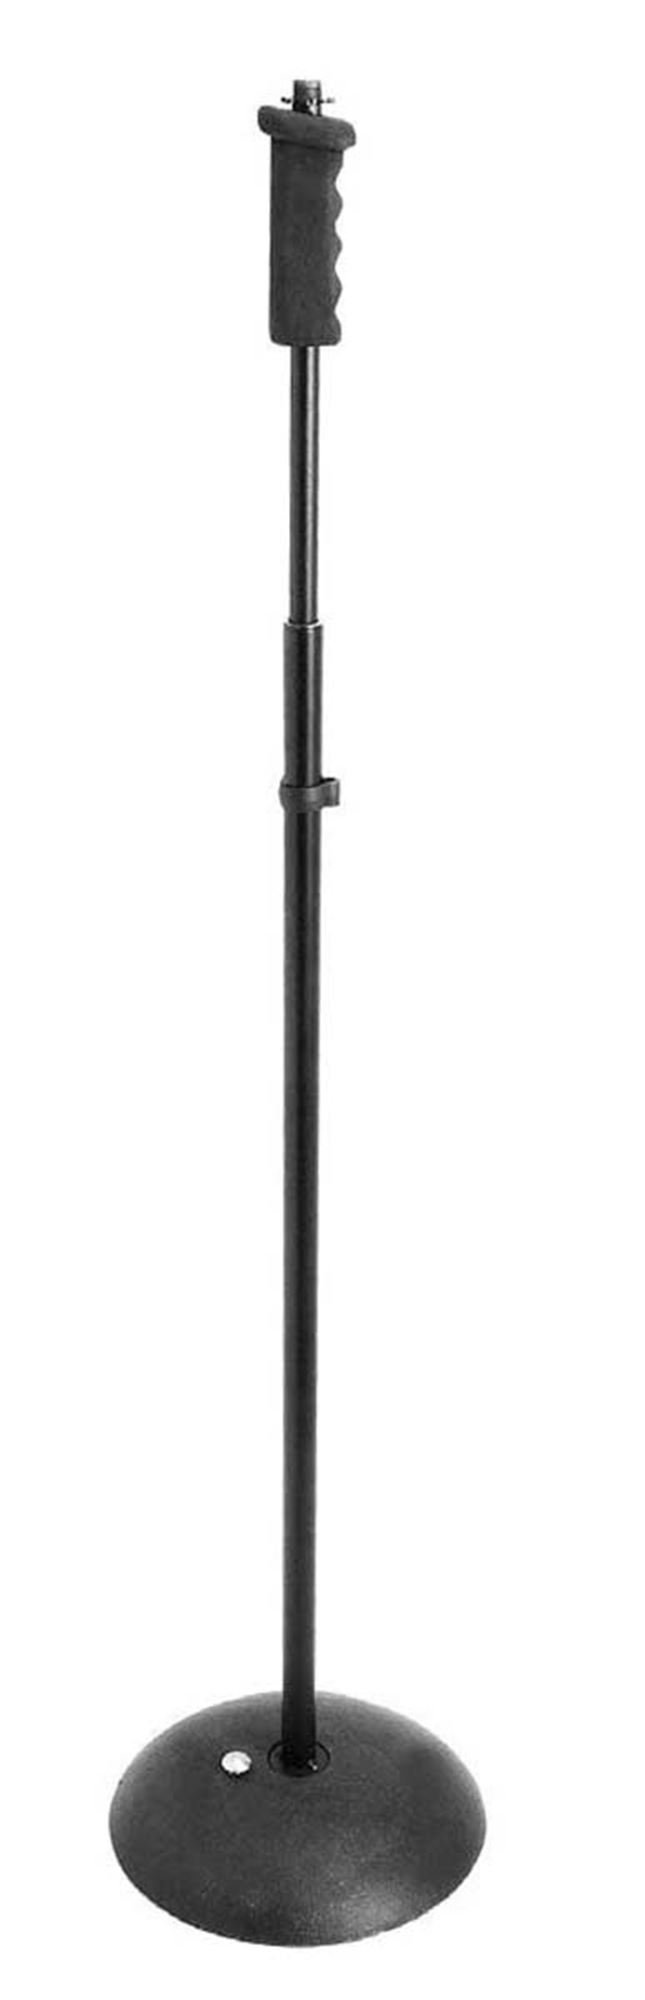 Stage MS7255PG Pistol Microphone Stand